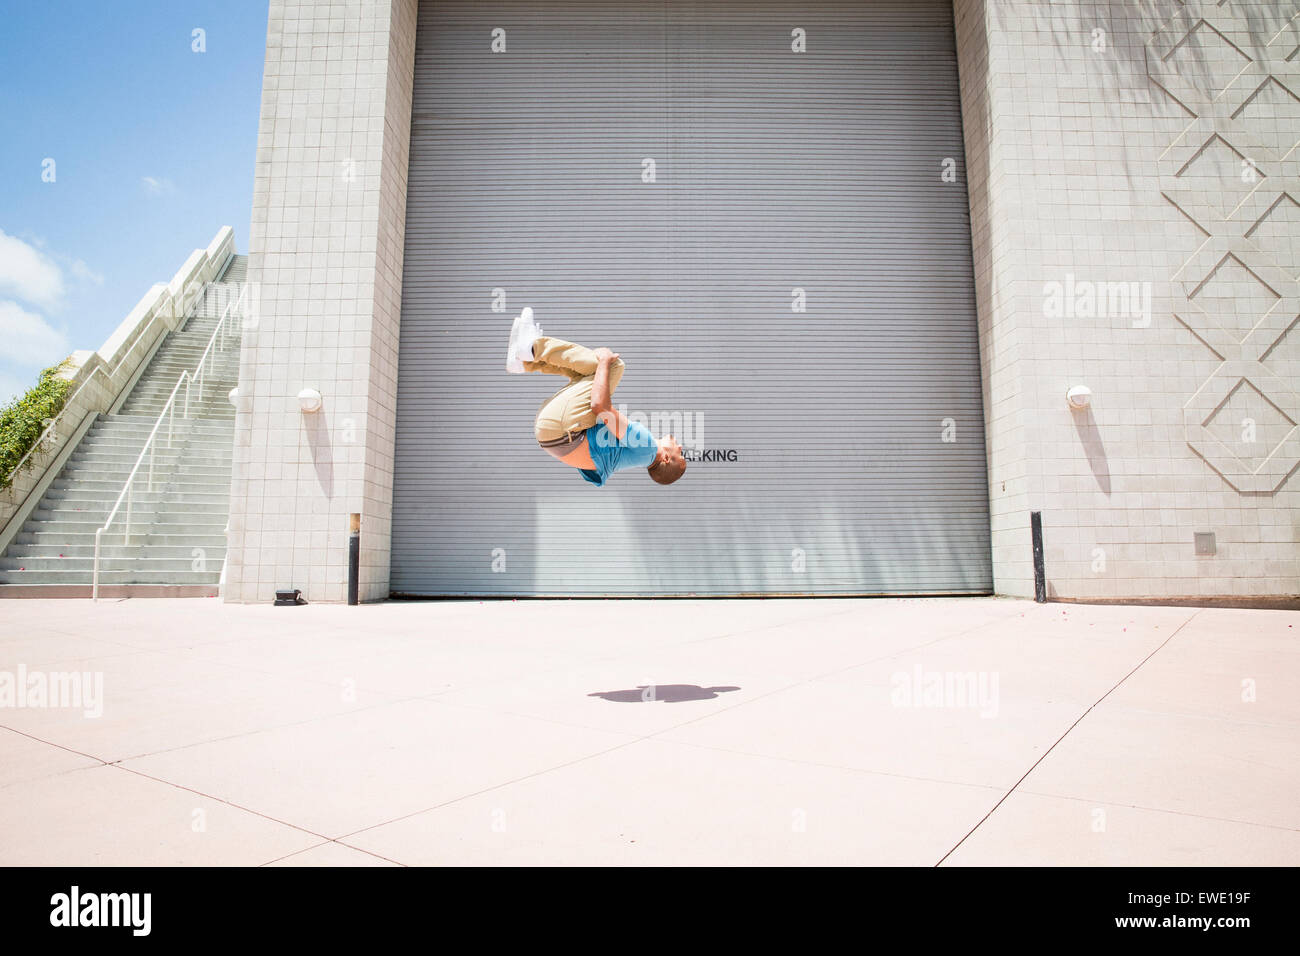 Young man somersaulting on street parcour parkour free running Stock Photo